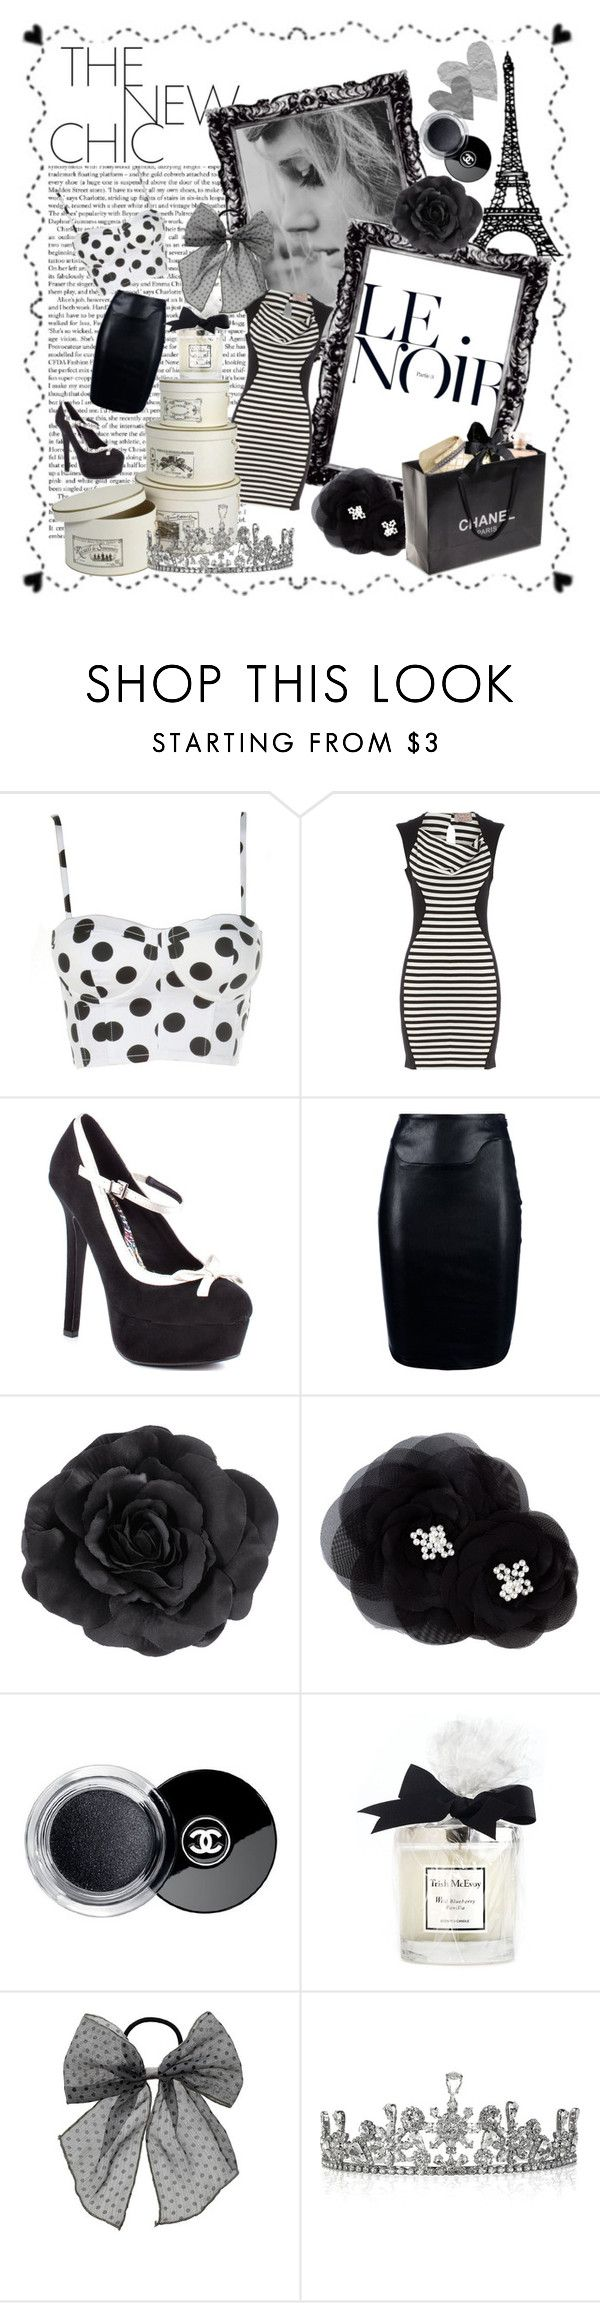 """Le Noir"" by sommer-reign ❤ liked on Polyvore featuring Dollhouse, Dorothy Perkins, 2 Lips Too, Thierry Mugler, H&M, Tasha, Chanel, Trish McEvoy and Louis Mariette"